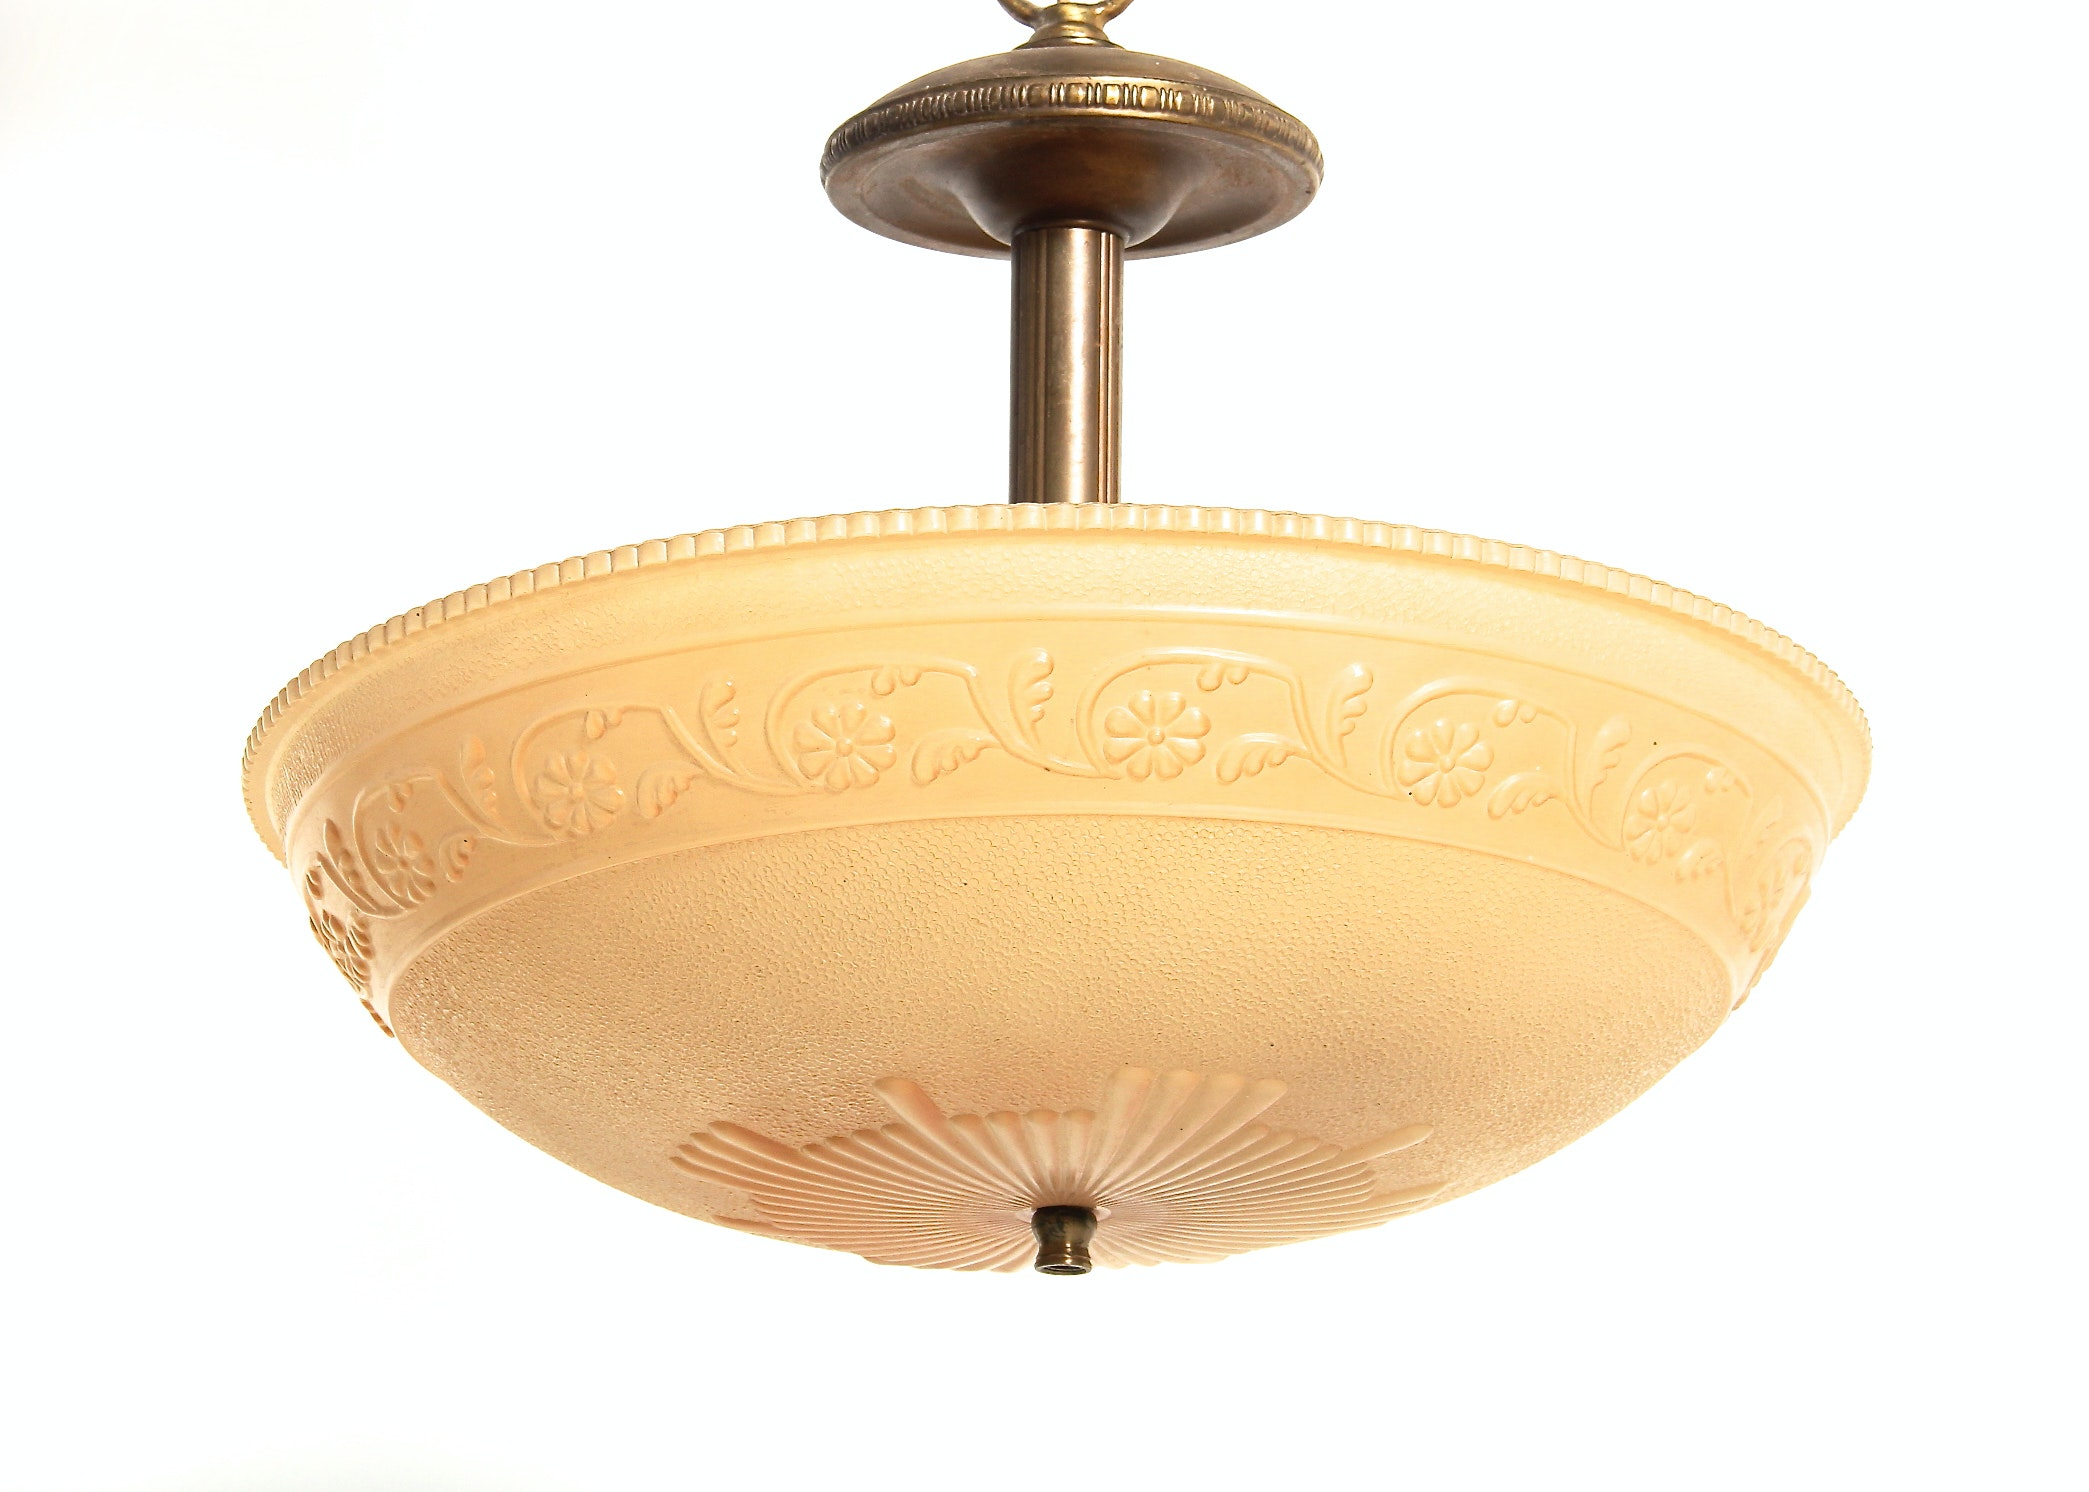 Vintage Ceiling Hanging Light Fixture With Glass Shade